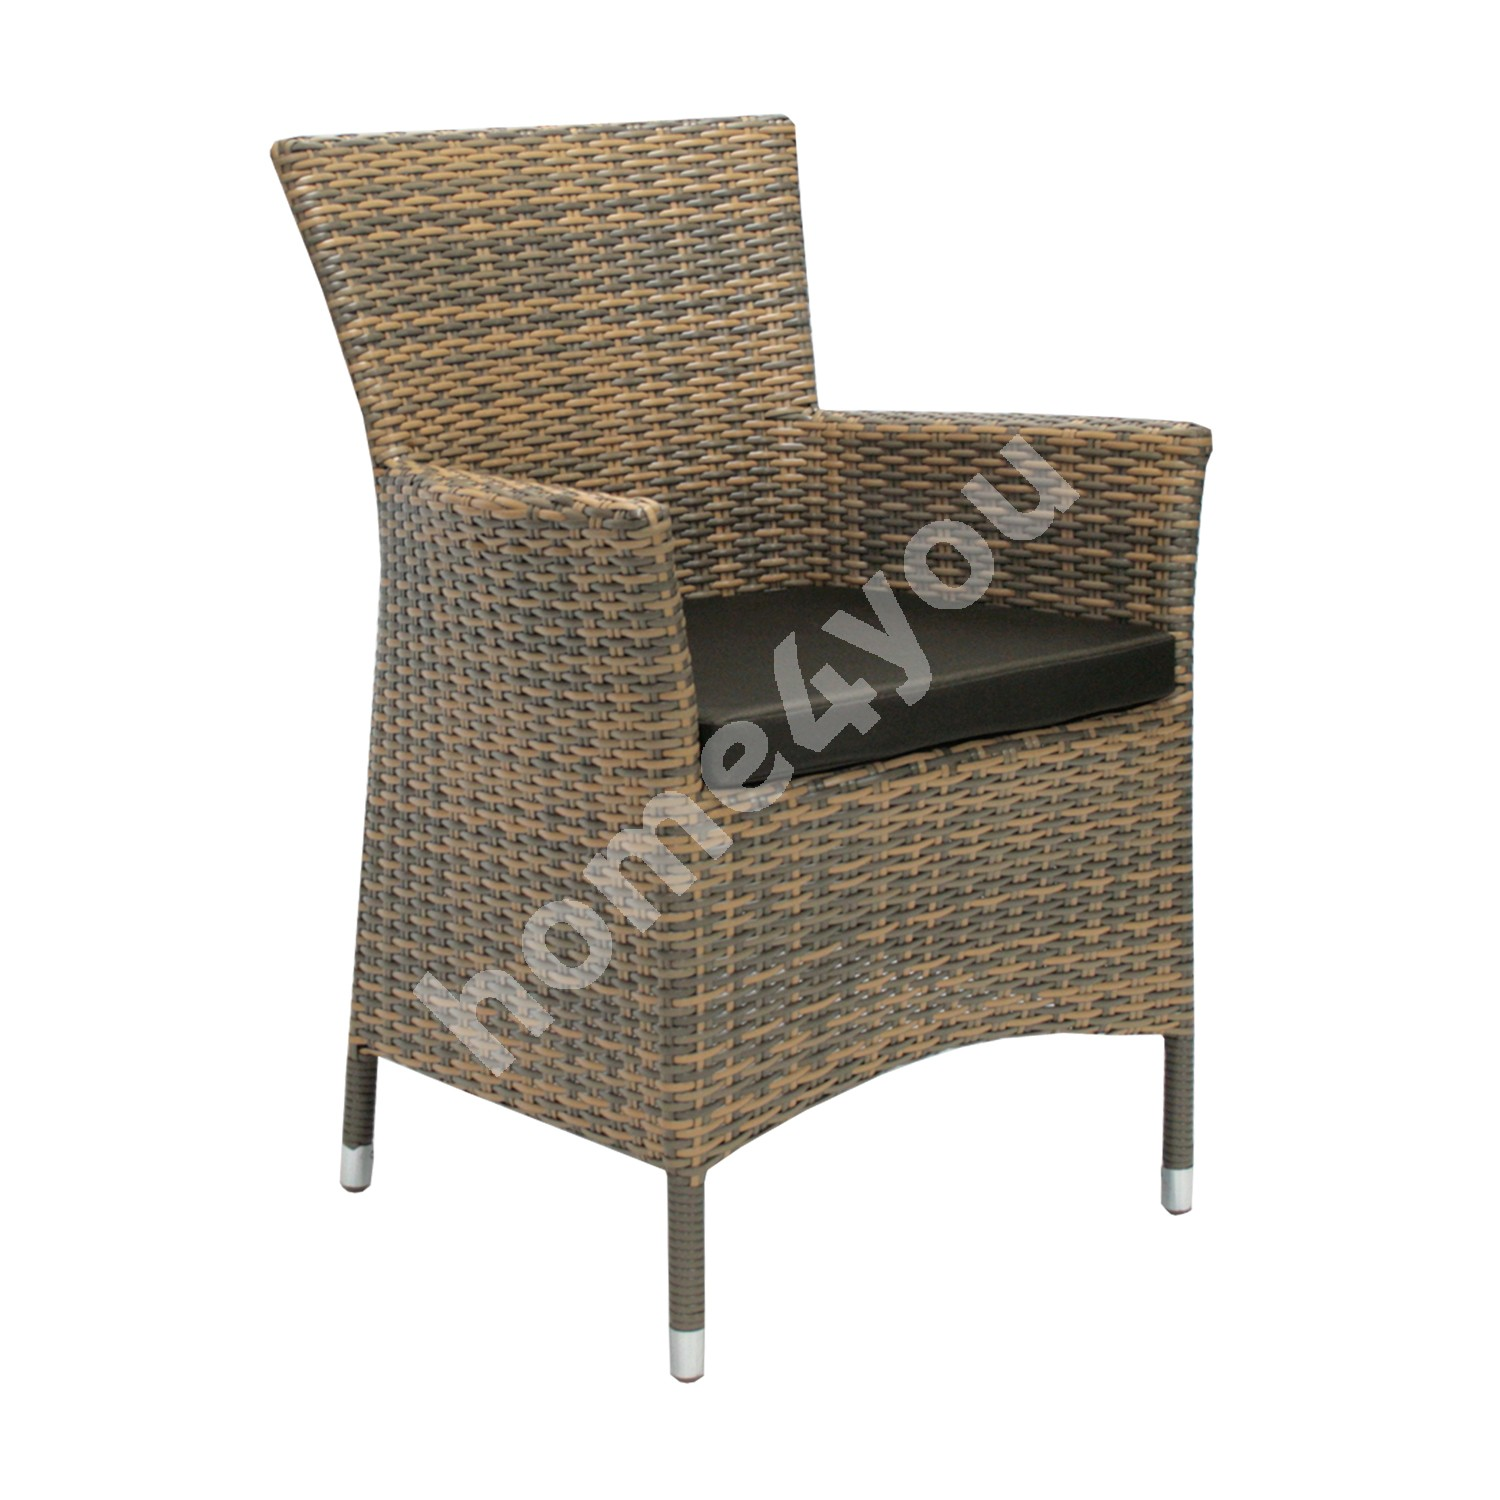 Chair WICKER-1 with cushion 61x58xH86cm, aluminum frame with plastic wicker, color: cappuccino